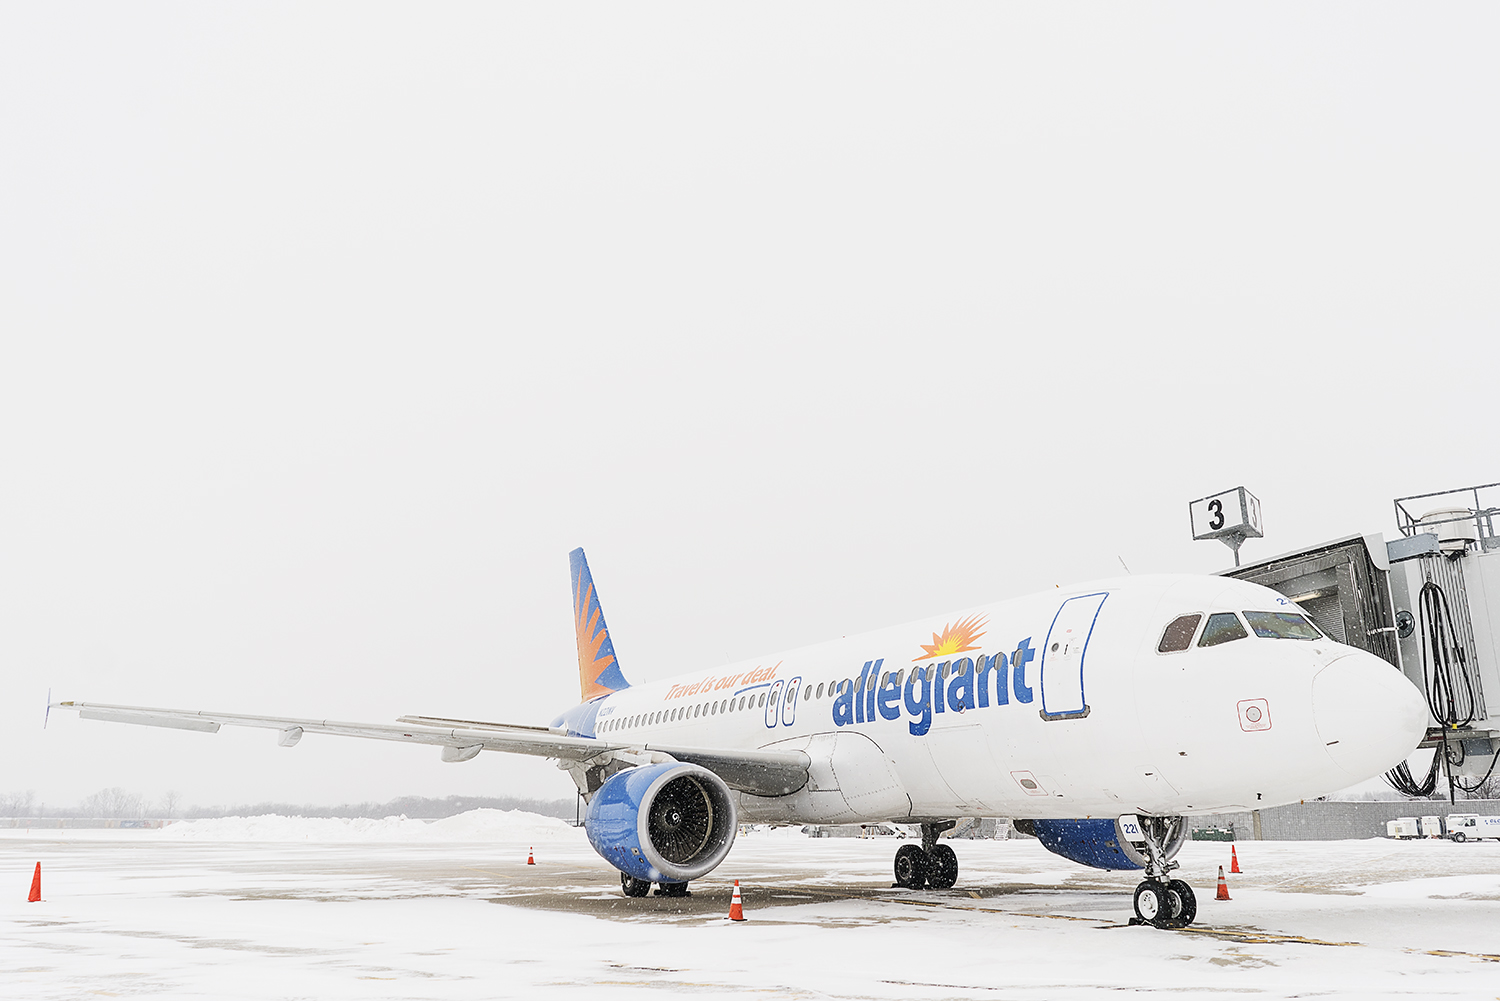 Flint, MI - Wednesday, January 3, 2018: An airplane, part of the Allegiant fleet, waits on the tarmac to be boarded and loaded with luggage at Bishop International Airport.